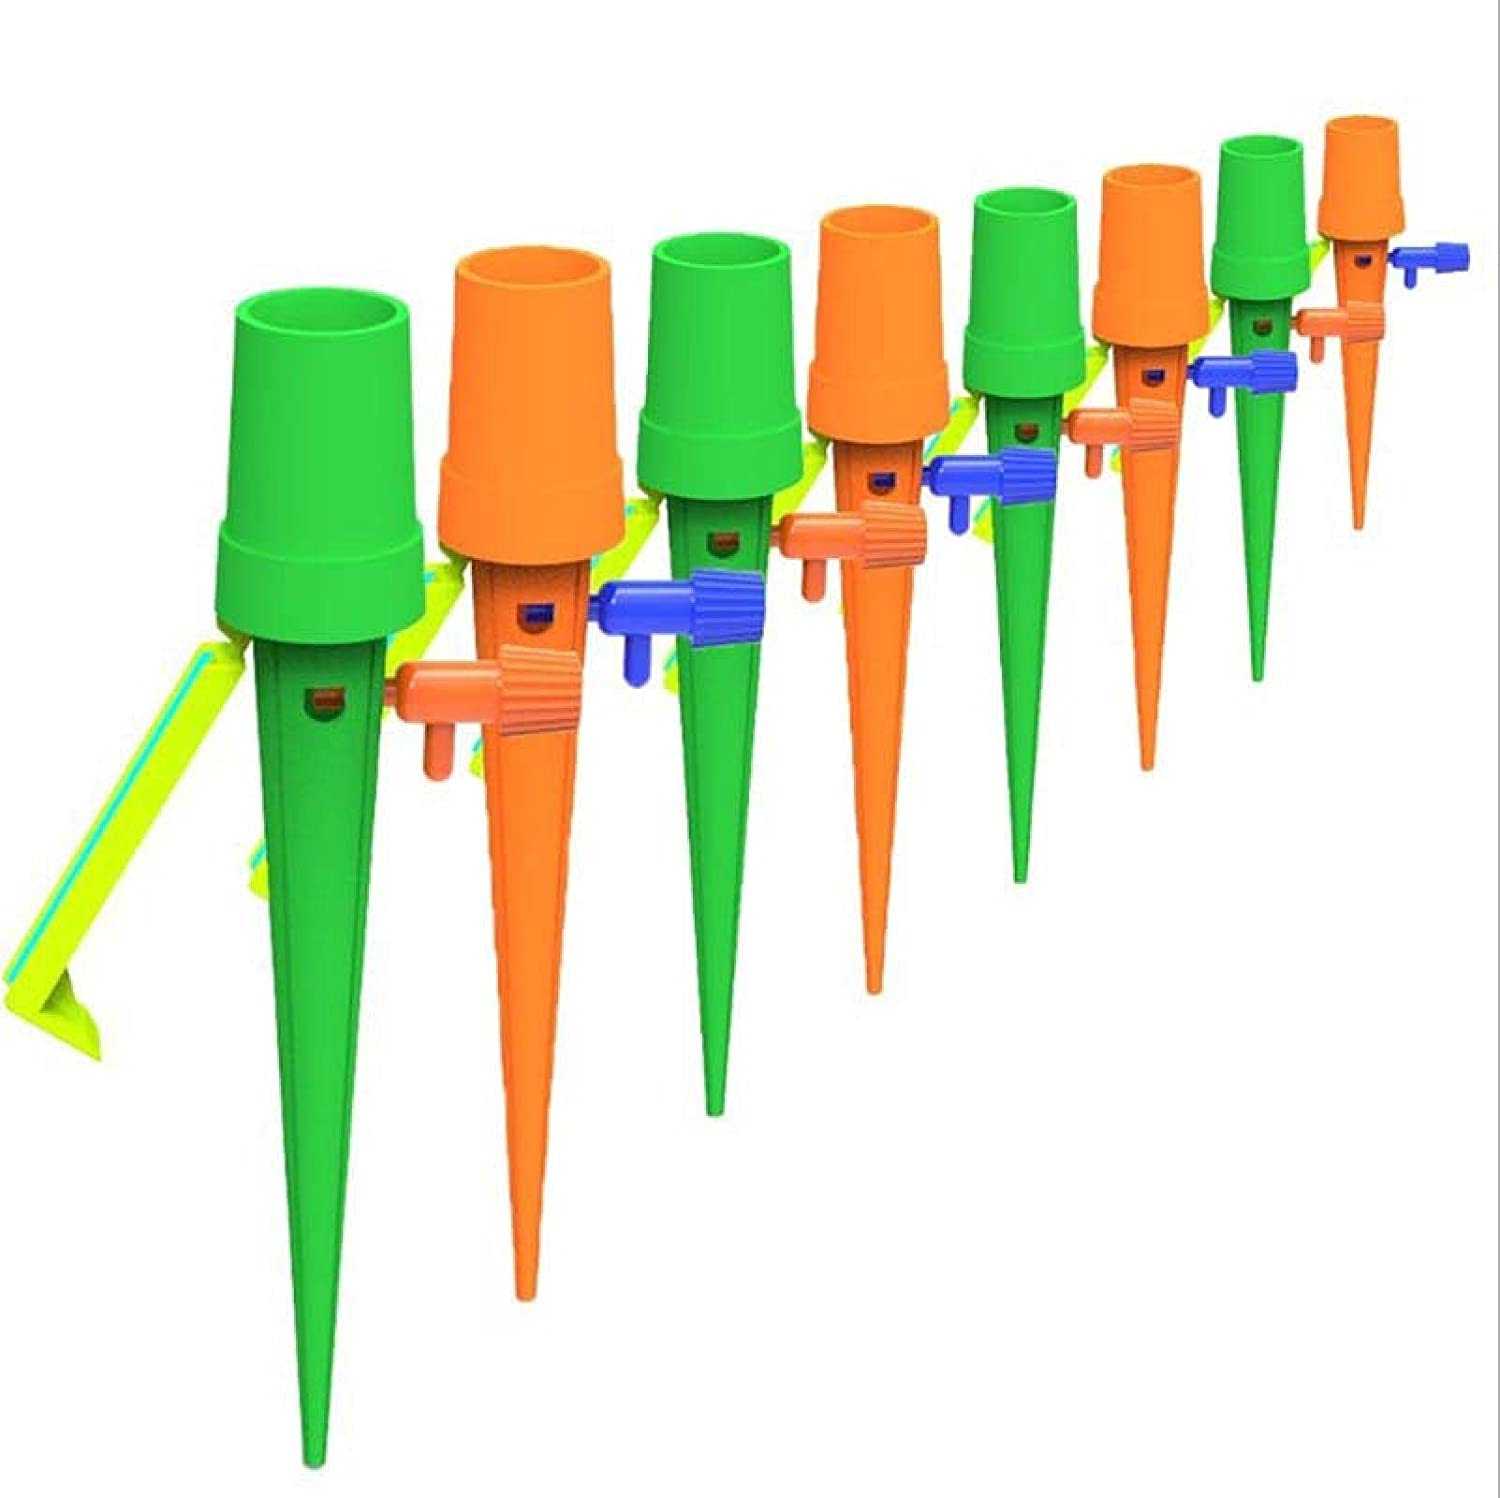 Plant Irrigation Drippers Self Watering Columbus Mall Drip Auto Free shipping on posting reviews Devices